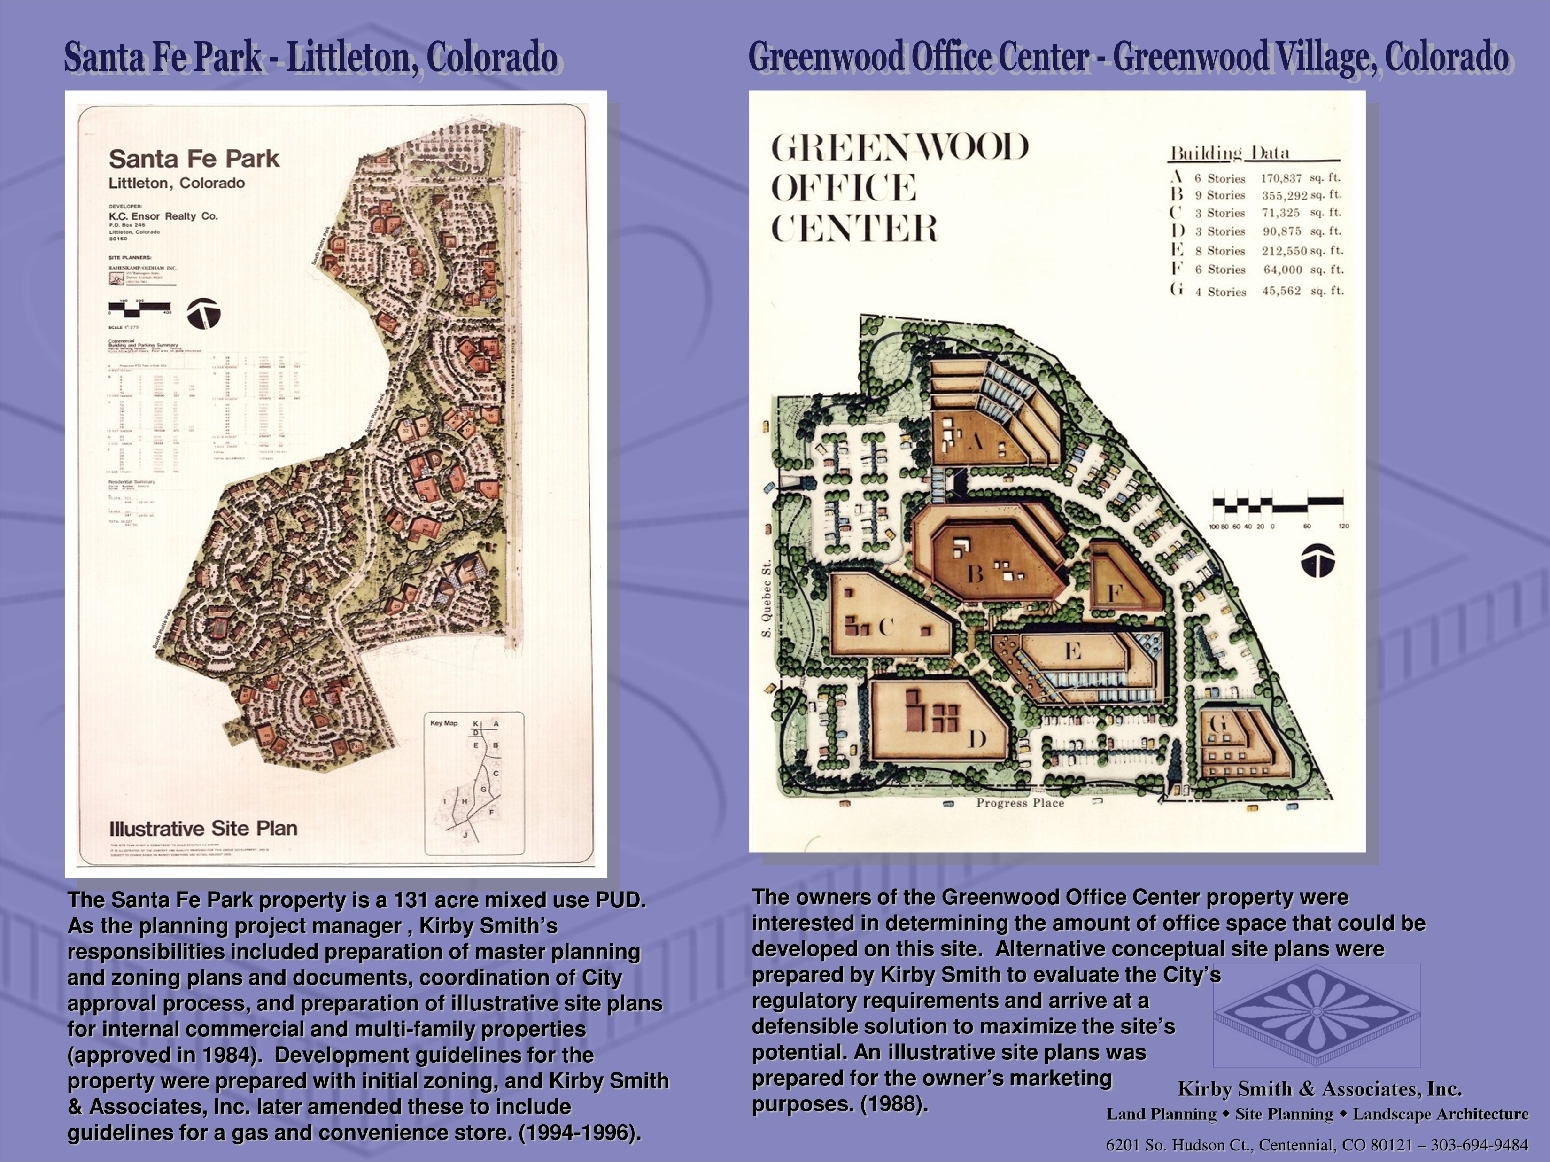 The owners of the Santa Fe Park & Greenwood Office Center properties were each interested in determining the amount of future developed that could be attained.  Alternative conceptual site plans were prepared by Kirby Smith to evaluate the City's                  regulatory requirements and arrive at a                               defensible solution to maximize the site's                             potential. Illustrative site plans were                                   prepared for the owner's evaluation and marketing purposes.